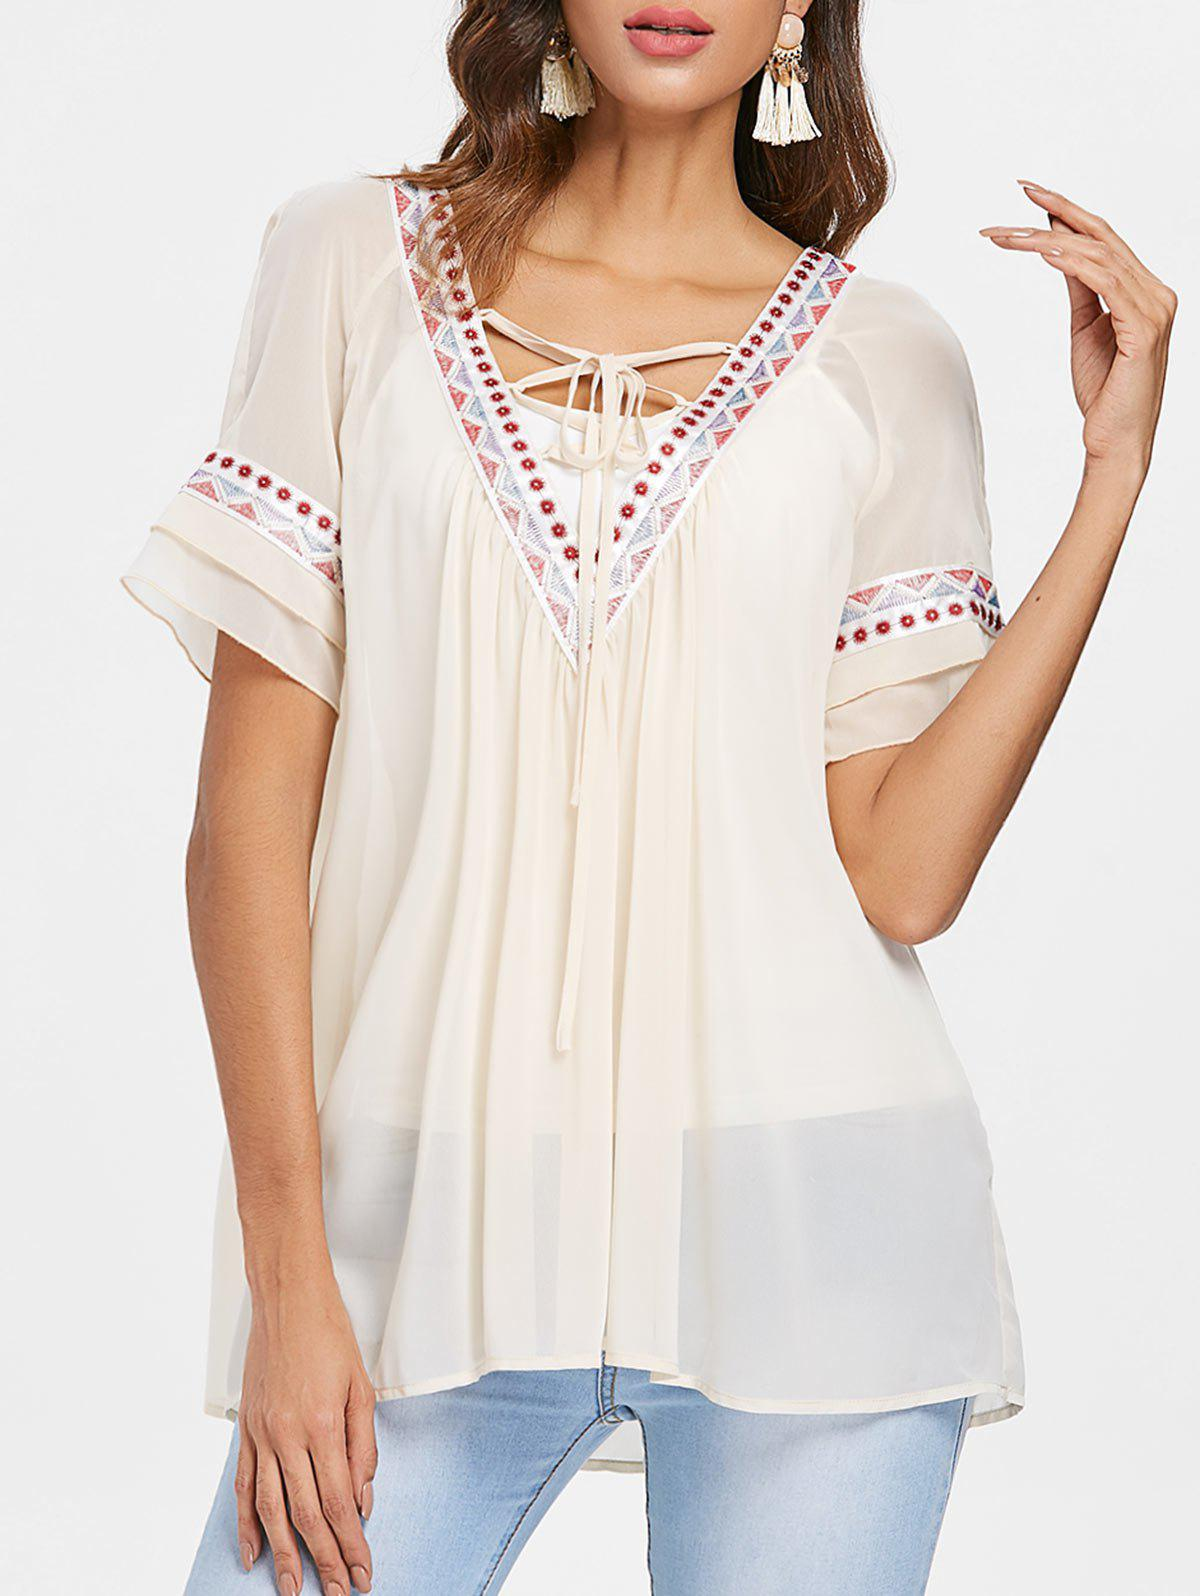 Hot Lace Up Collar Embroidery Chiffon Blouse